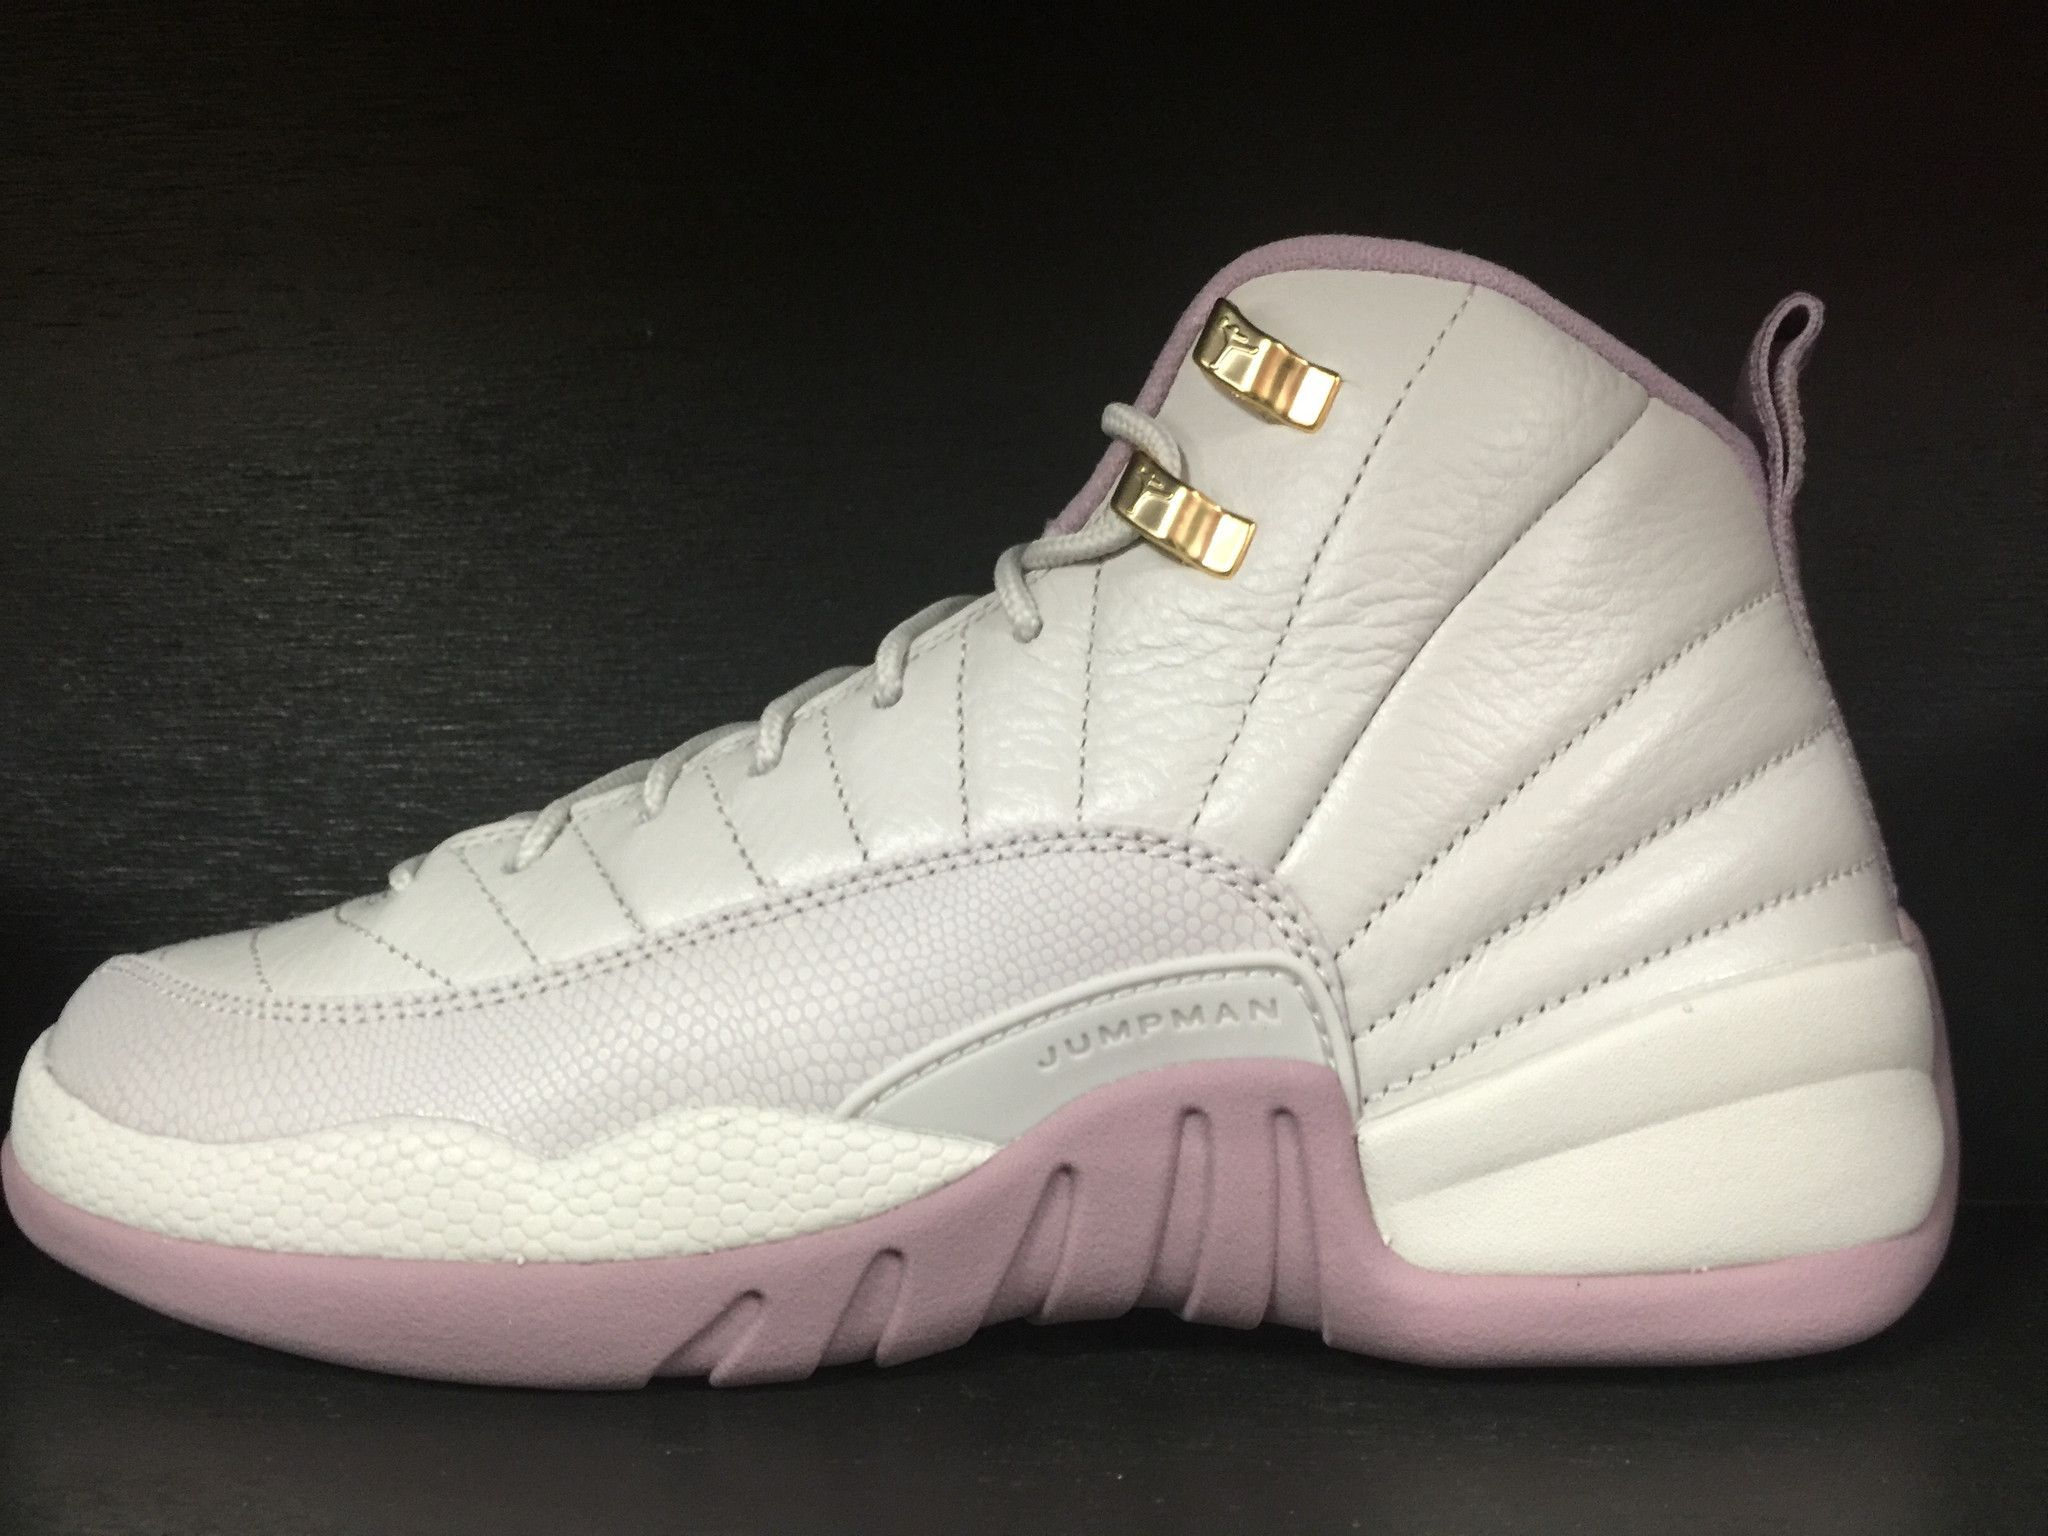 new concept de7d3 0df91 ... womens air jordan retro 12 black purple  Air Jordan 12 Retro  Heiress   .. ...